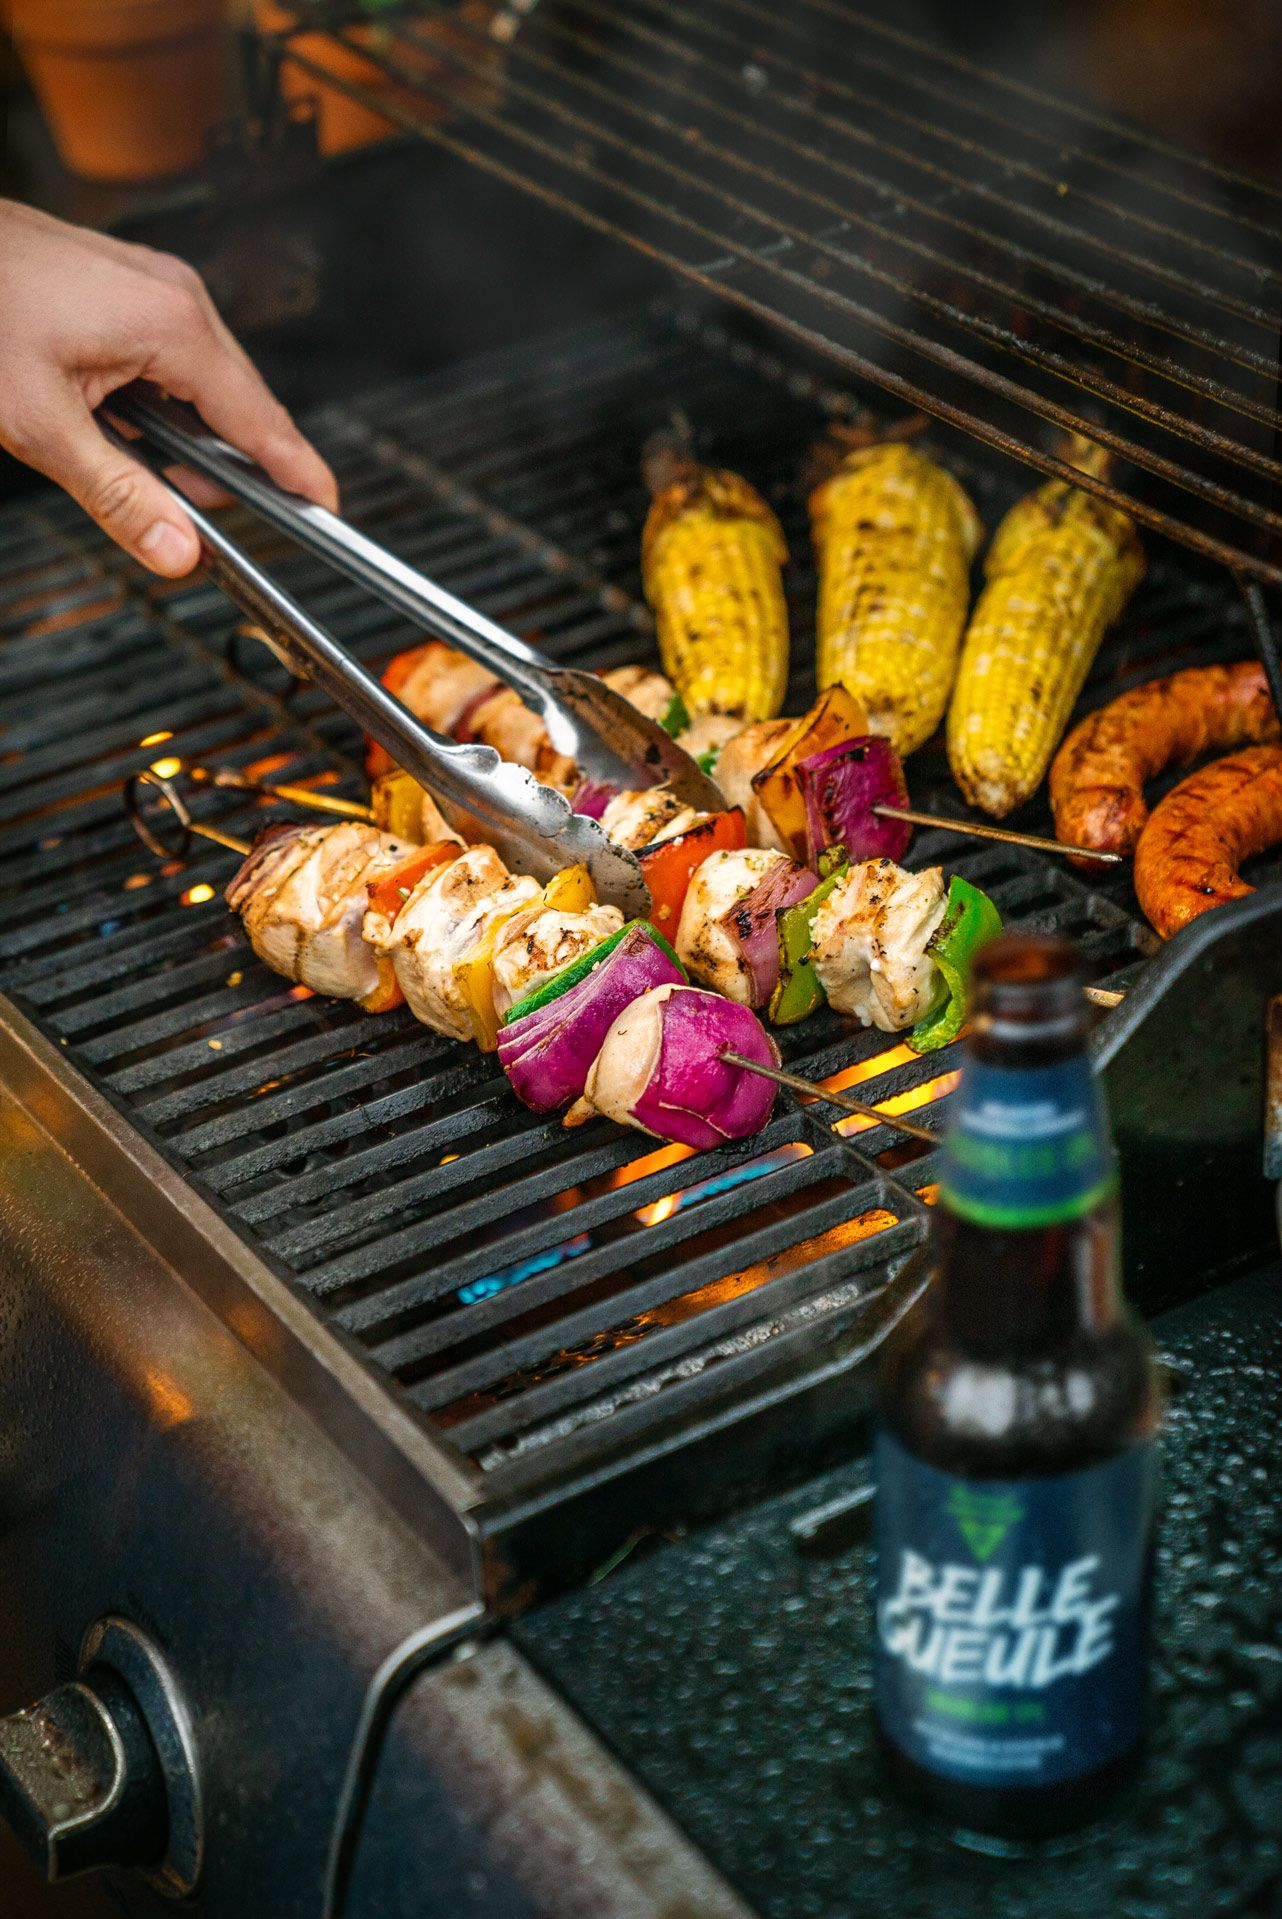 man grilling on barbecue turning chicken skewers with Belle Gueule beer in the foreground photographed by Bruno Florin for Belle Gueule with Forsman & Bodenfors